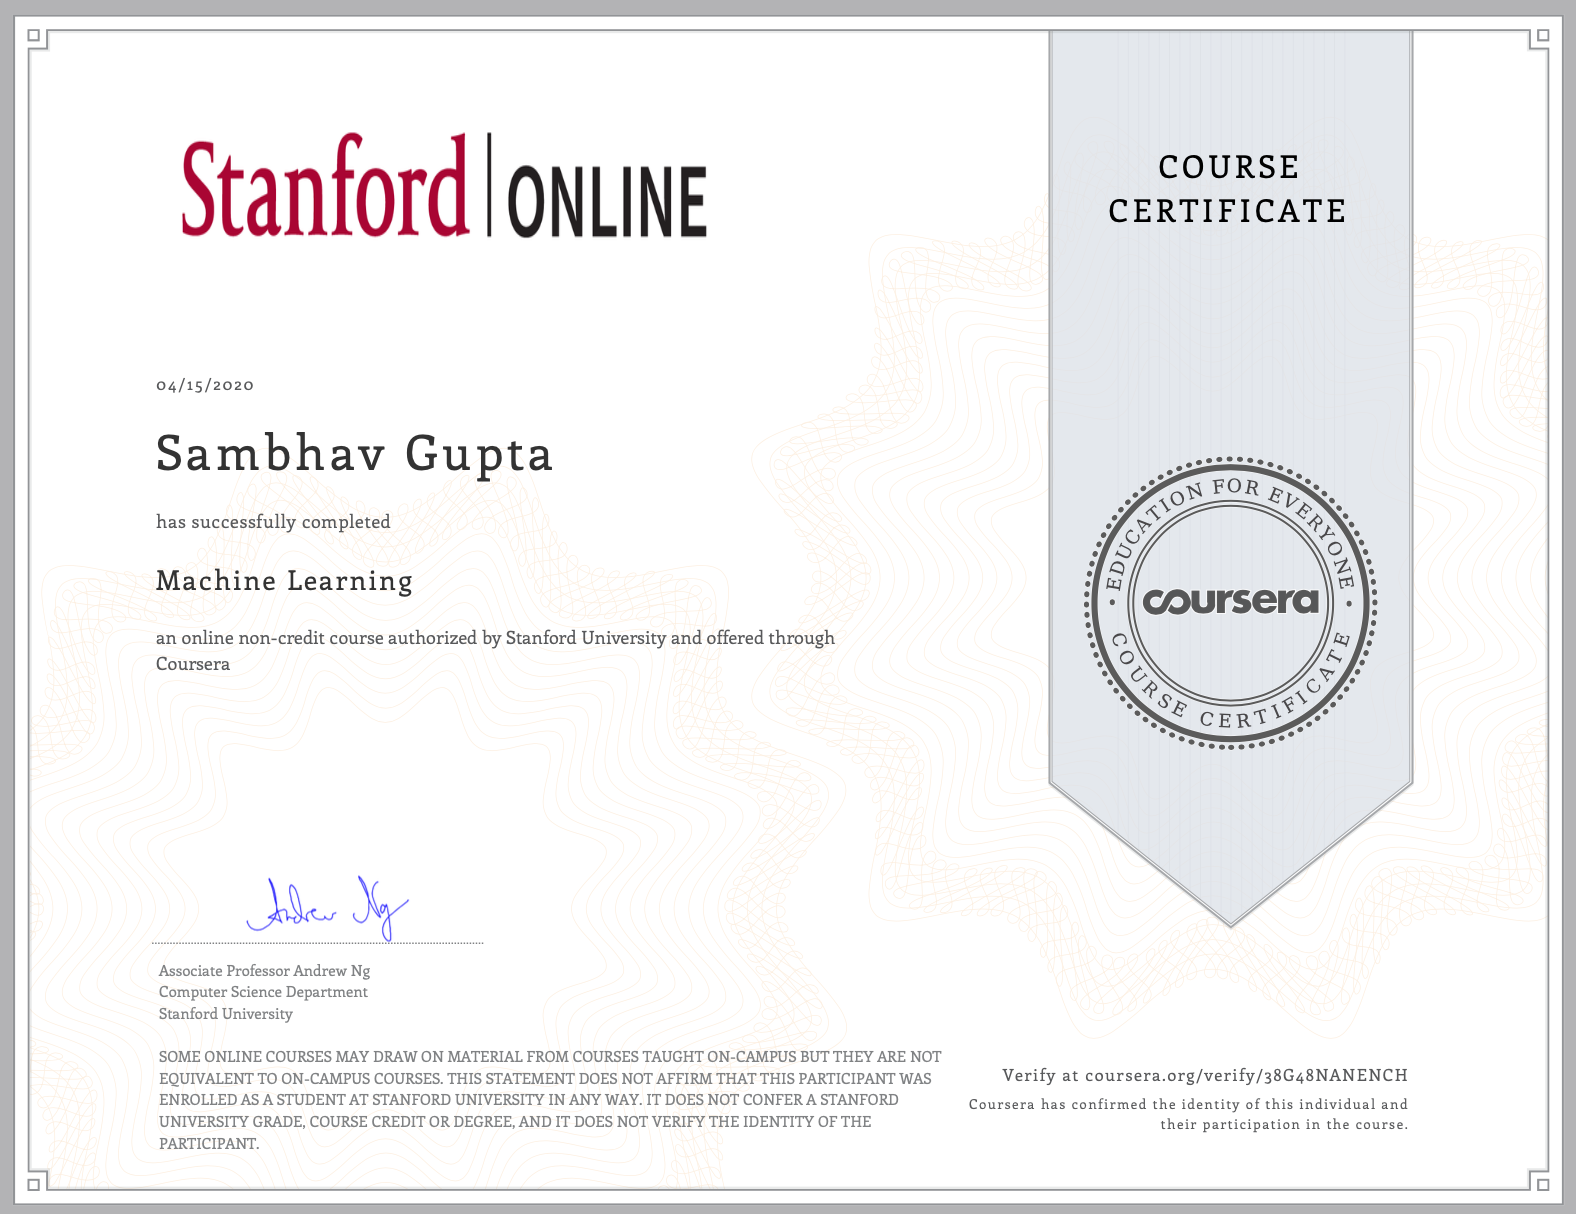 machine_learning_coursera_stanford